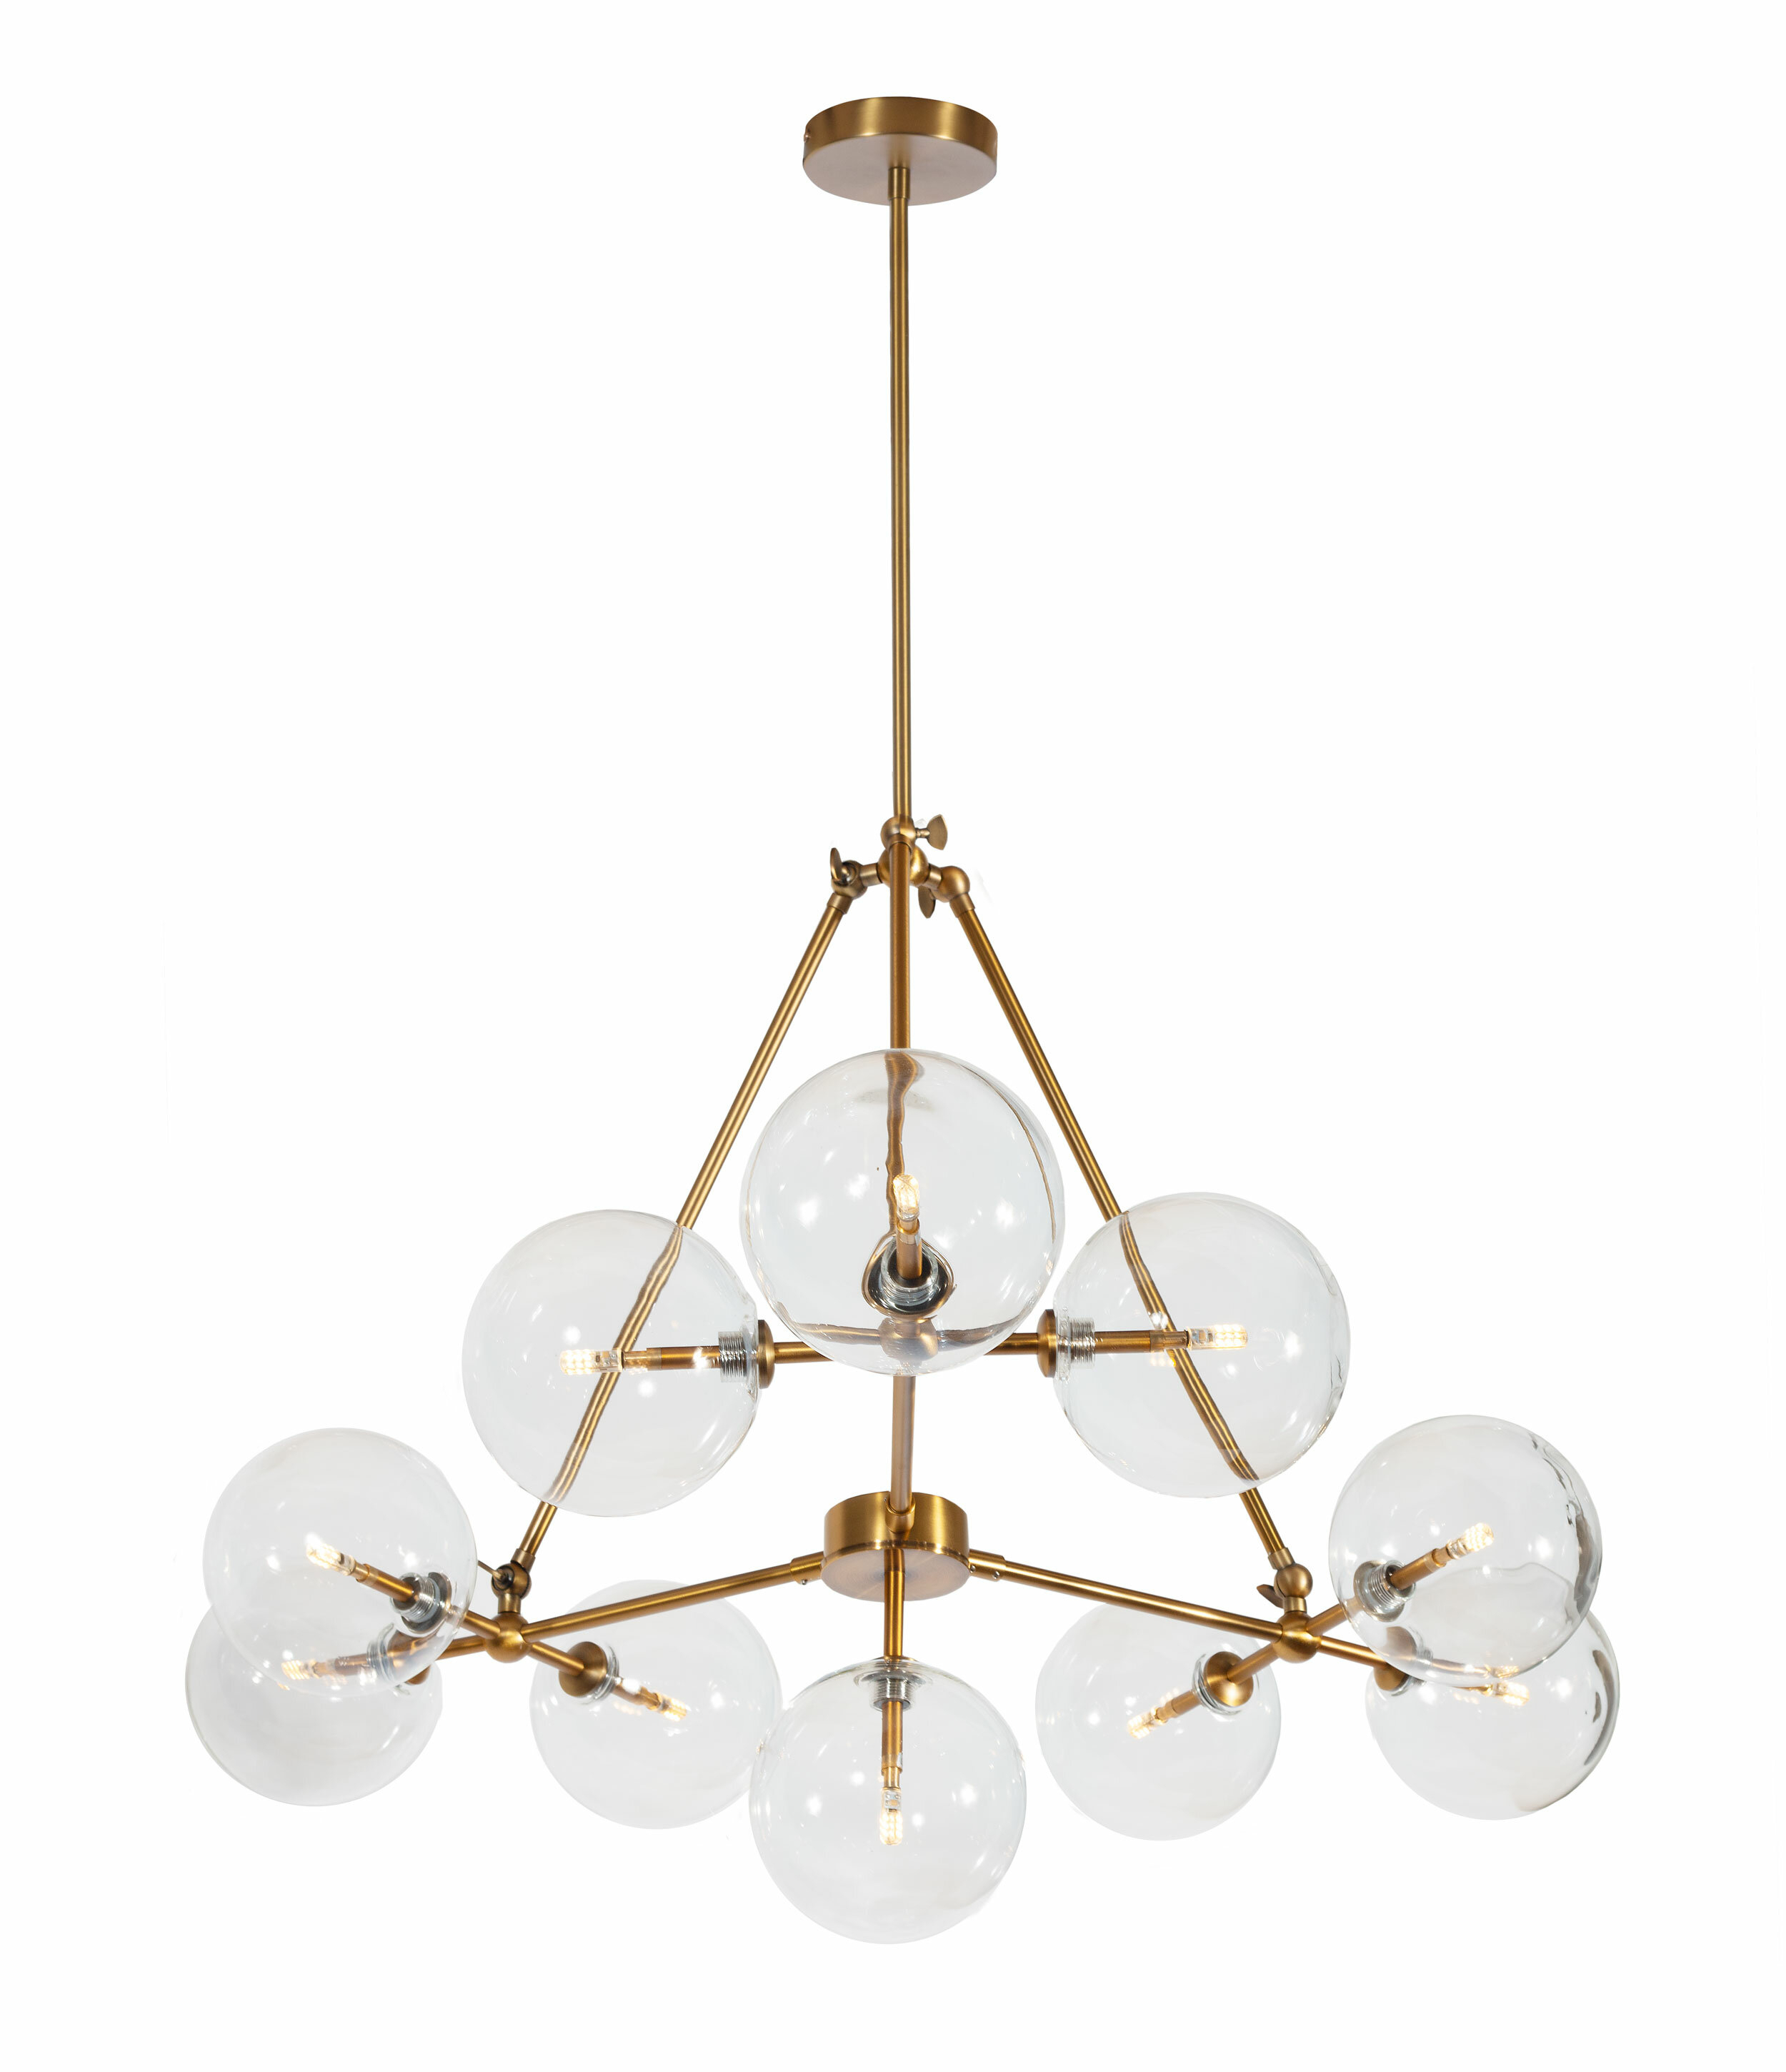 Jamie 10-Light Sputnik Chandelier in Asher 12-Light Sputnik Chandeliers (Image 16 of 30)